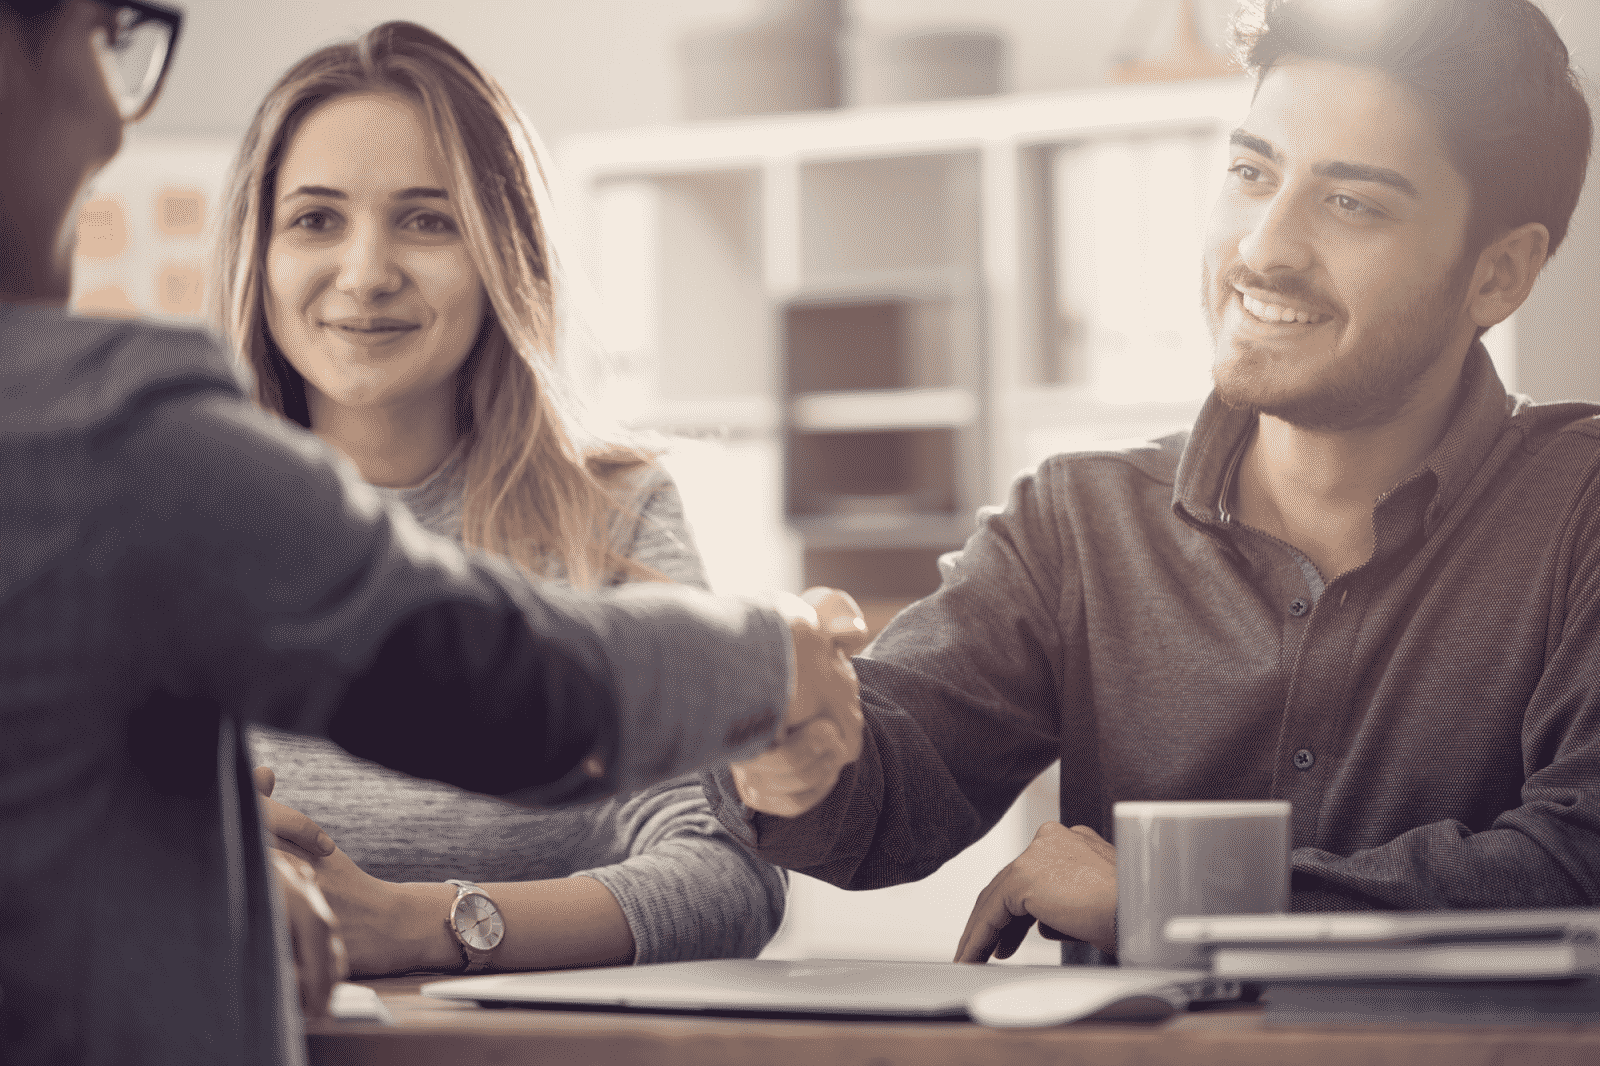 Employees shake hands at a table in an office